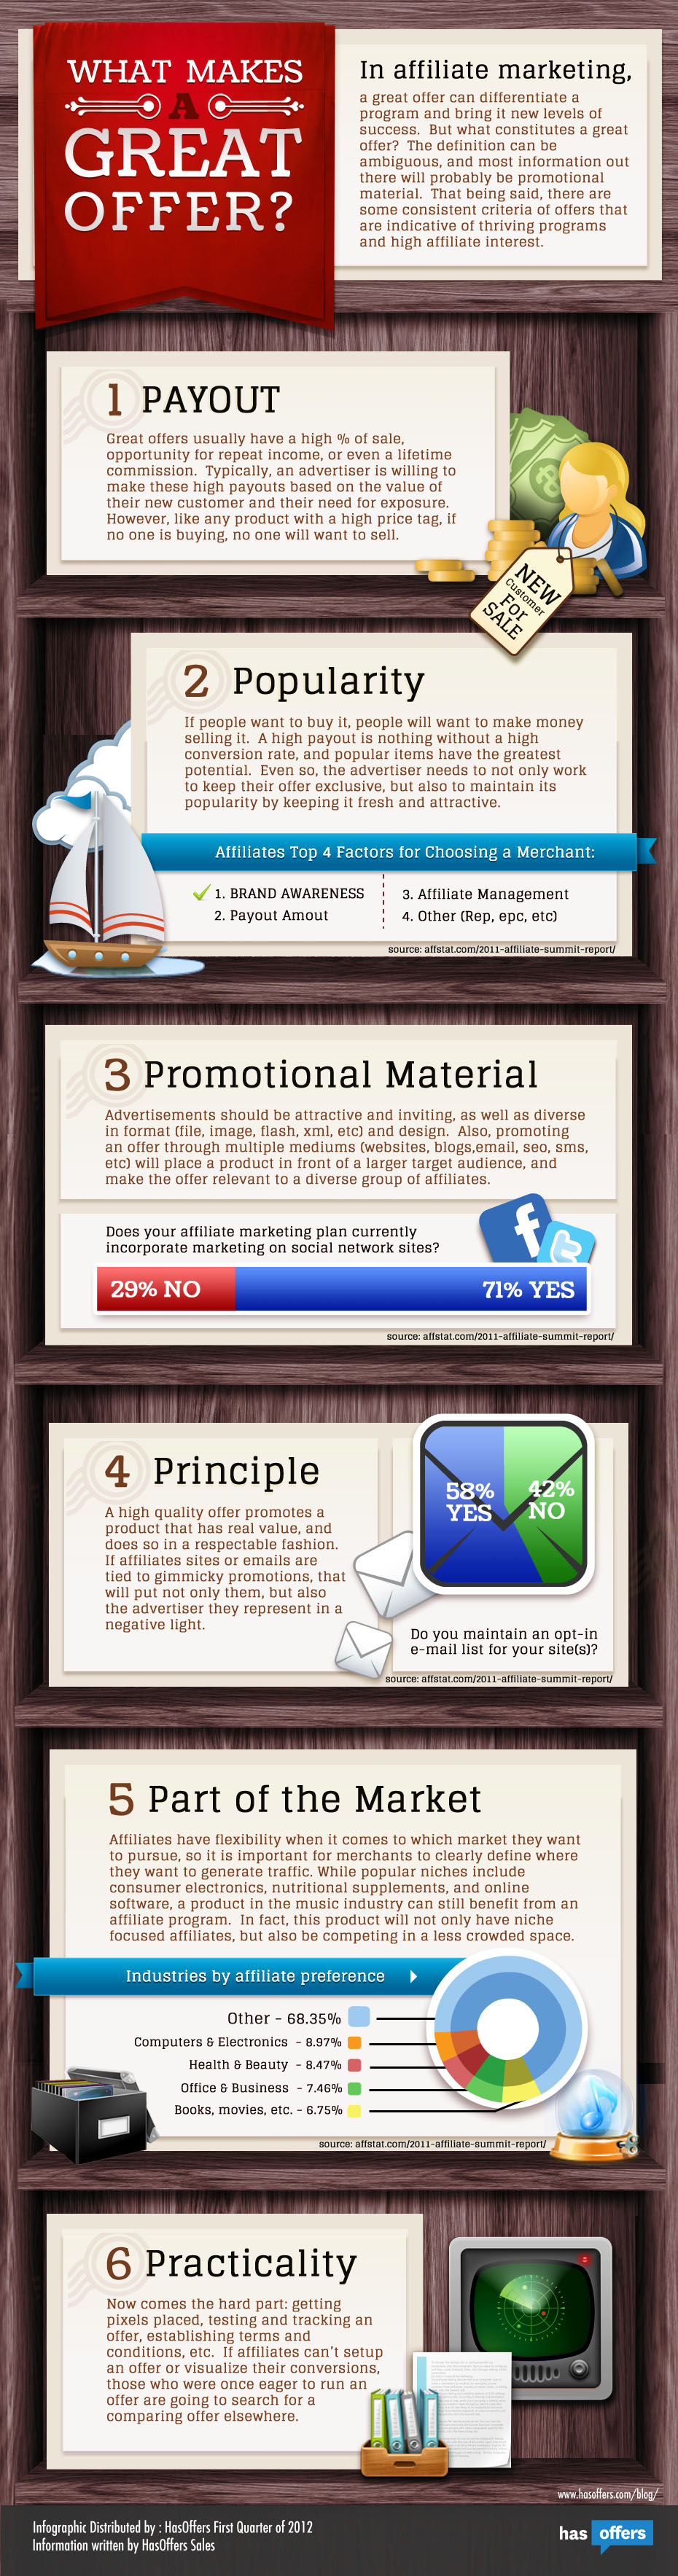 infographic affiliate marketing offer